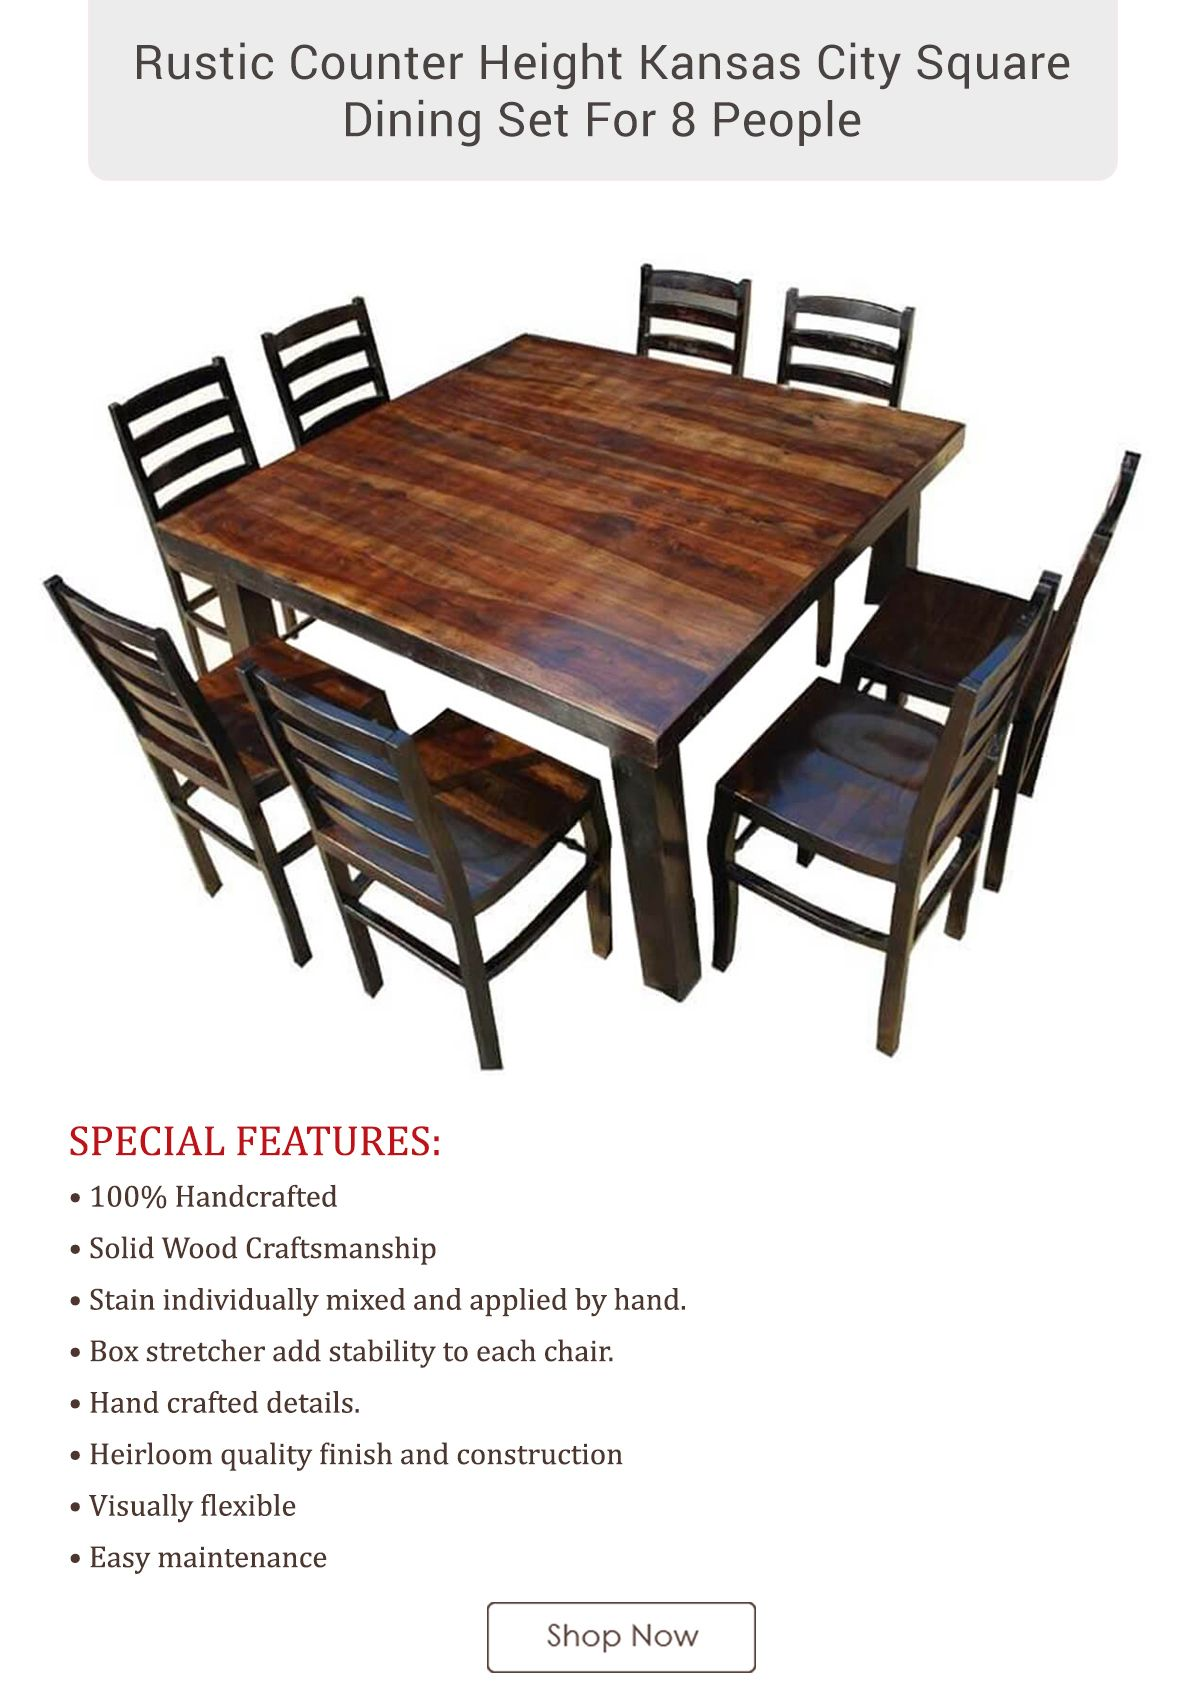 Kansas City Rustic Farmhouse Counter Height Square Dining Set High Top Dining Table Rustic Counter Dining Table Counter height square table for 8